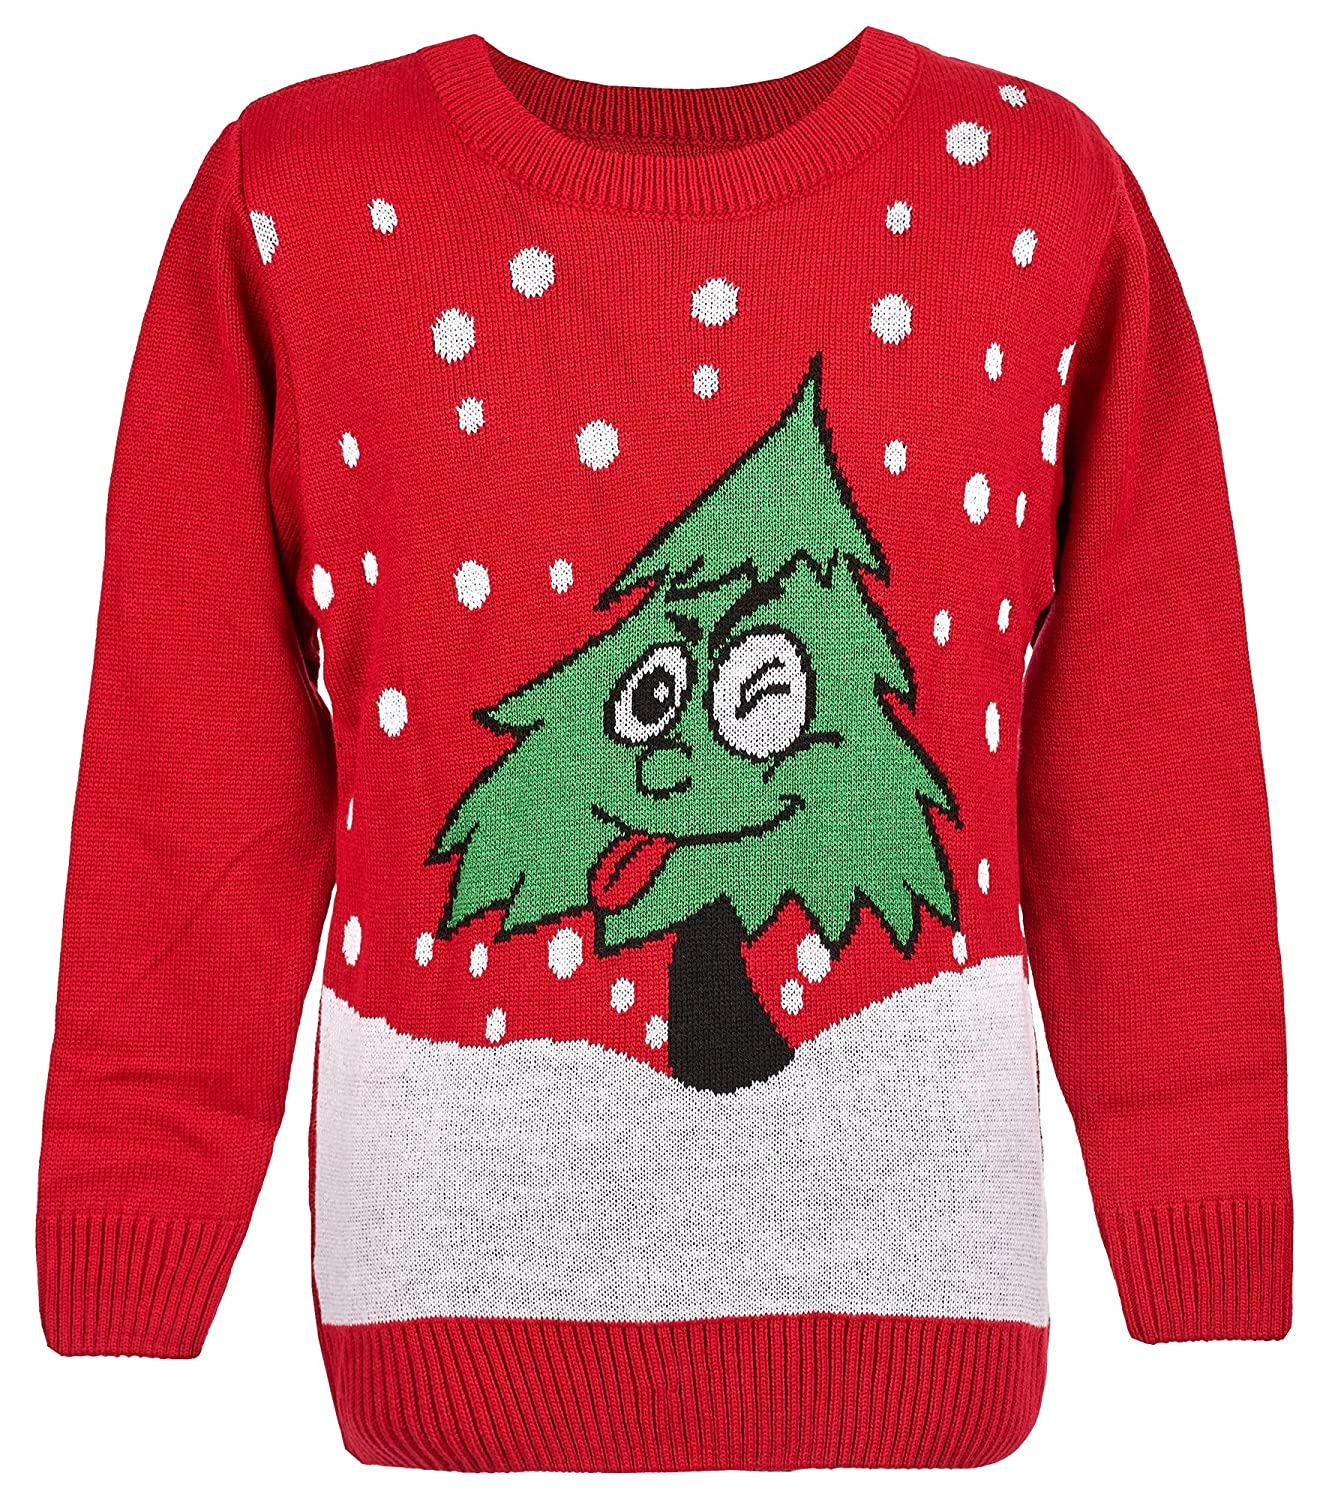 Maan Store Unisex Kids Christmas Jumper Girls BoysXmas Jumpers Christmas Tree with Wink Eye